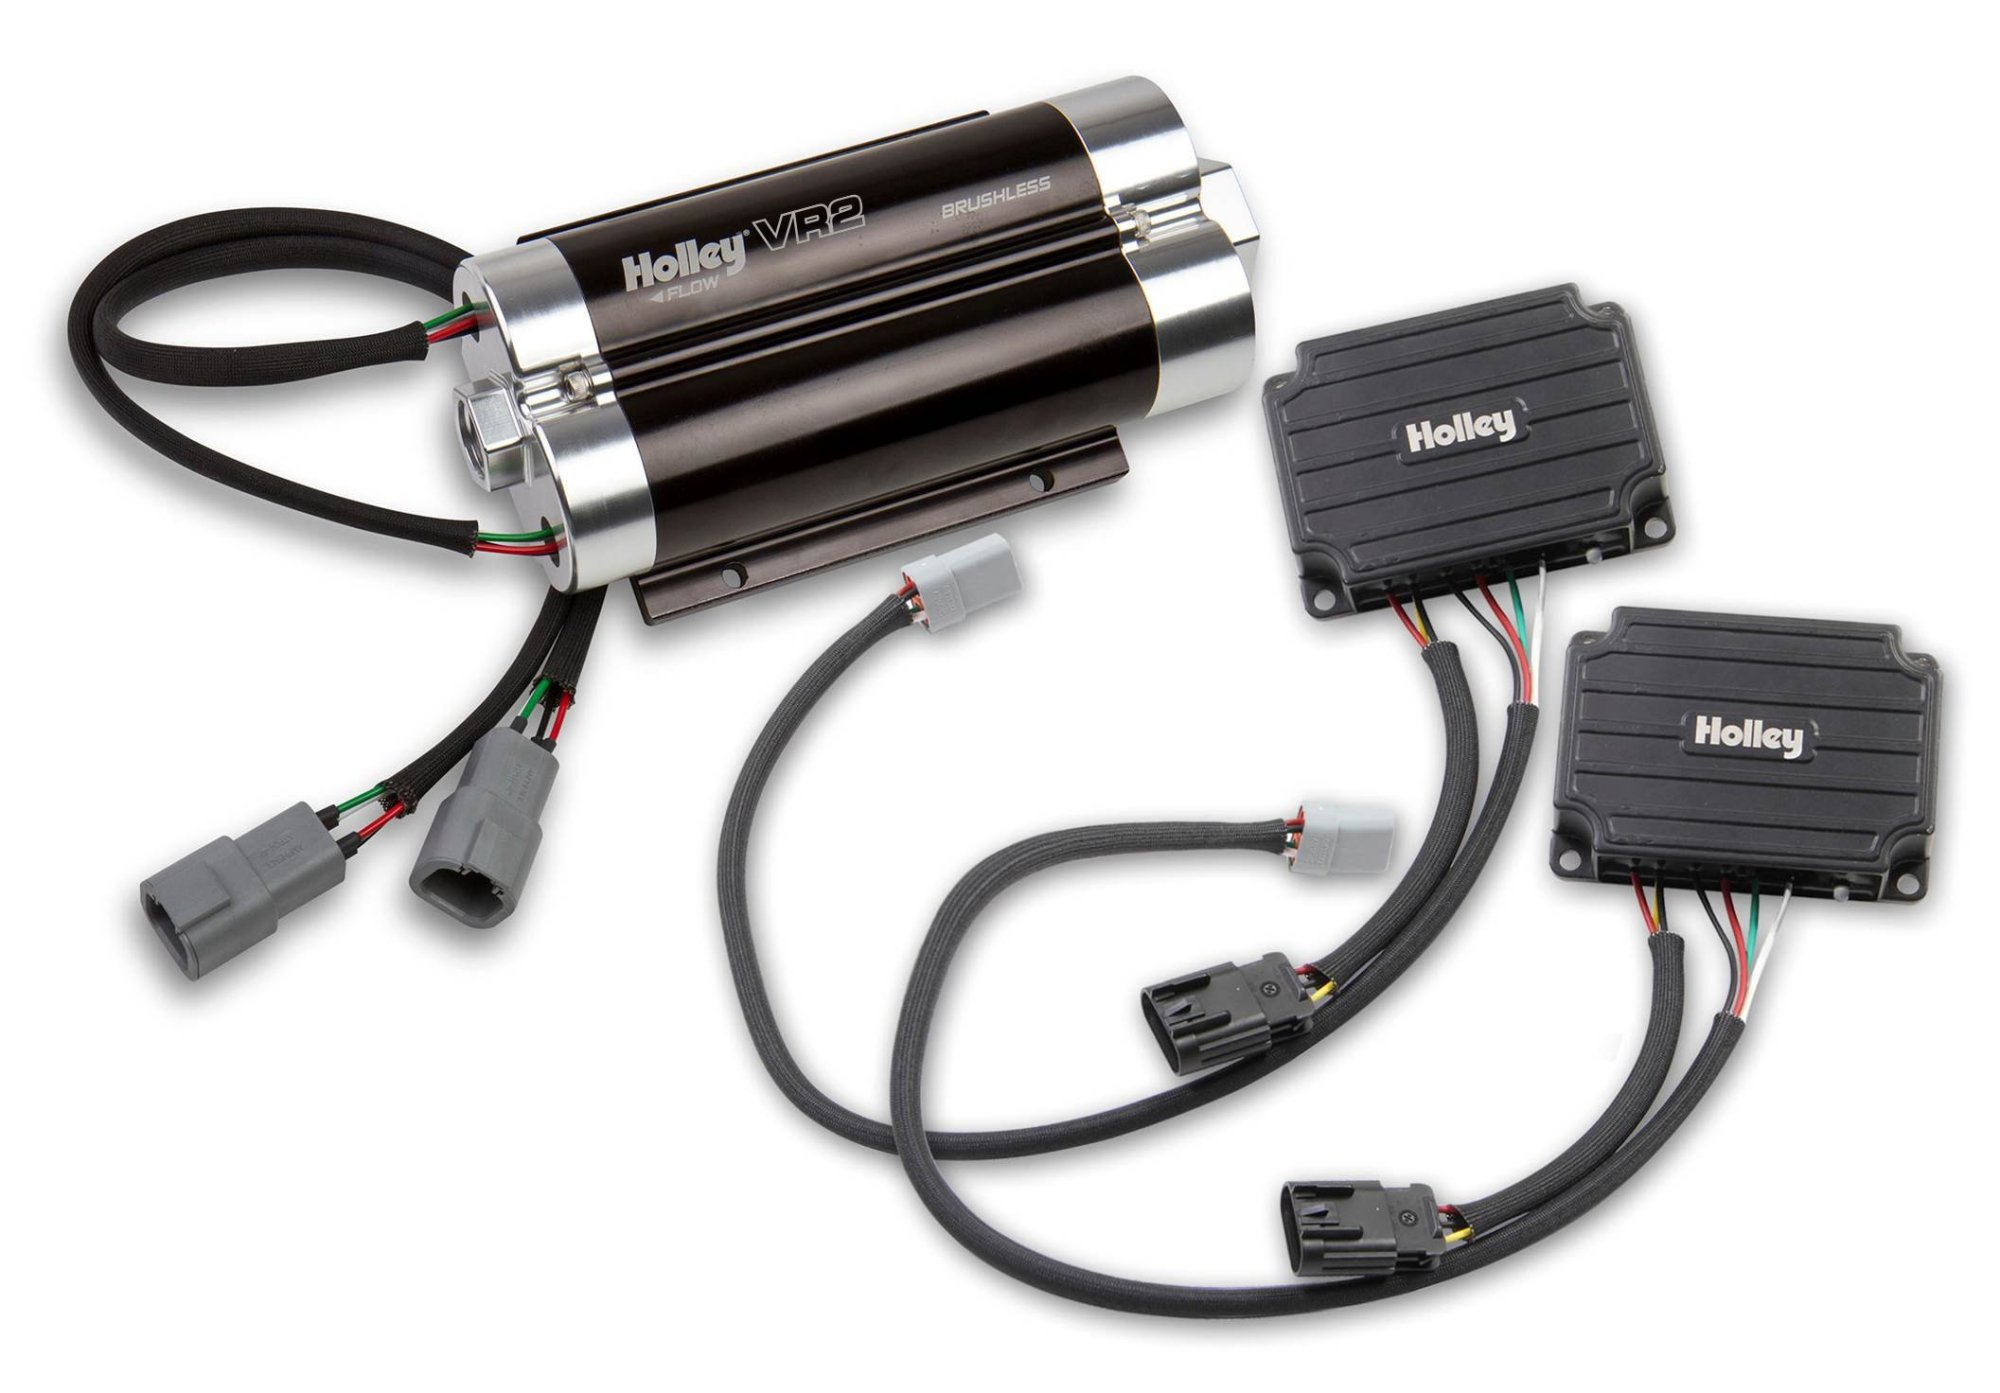 hight resolution of 12 3000 2 vr2 brushless fuel pump w controller dual 10an